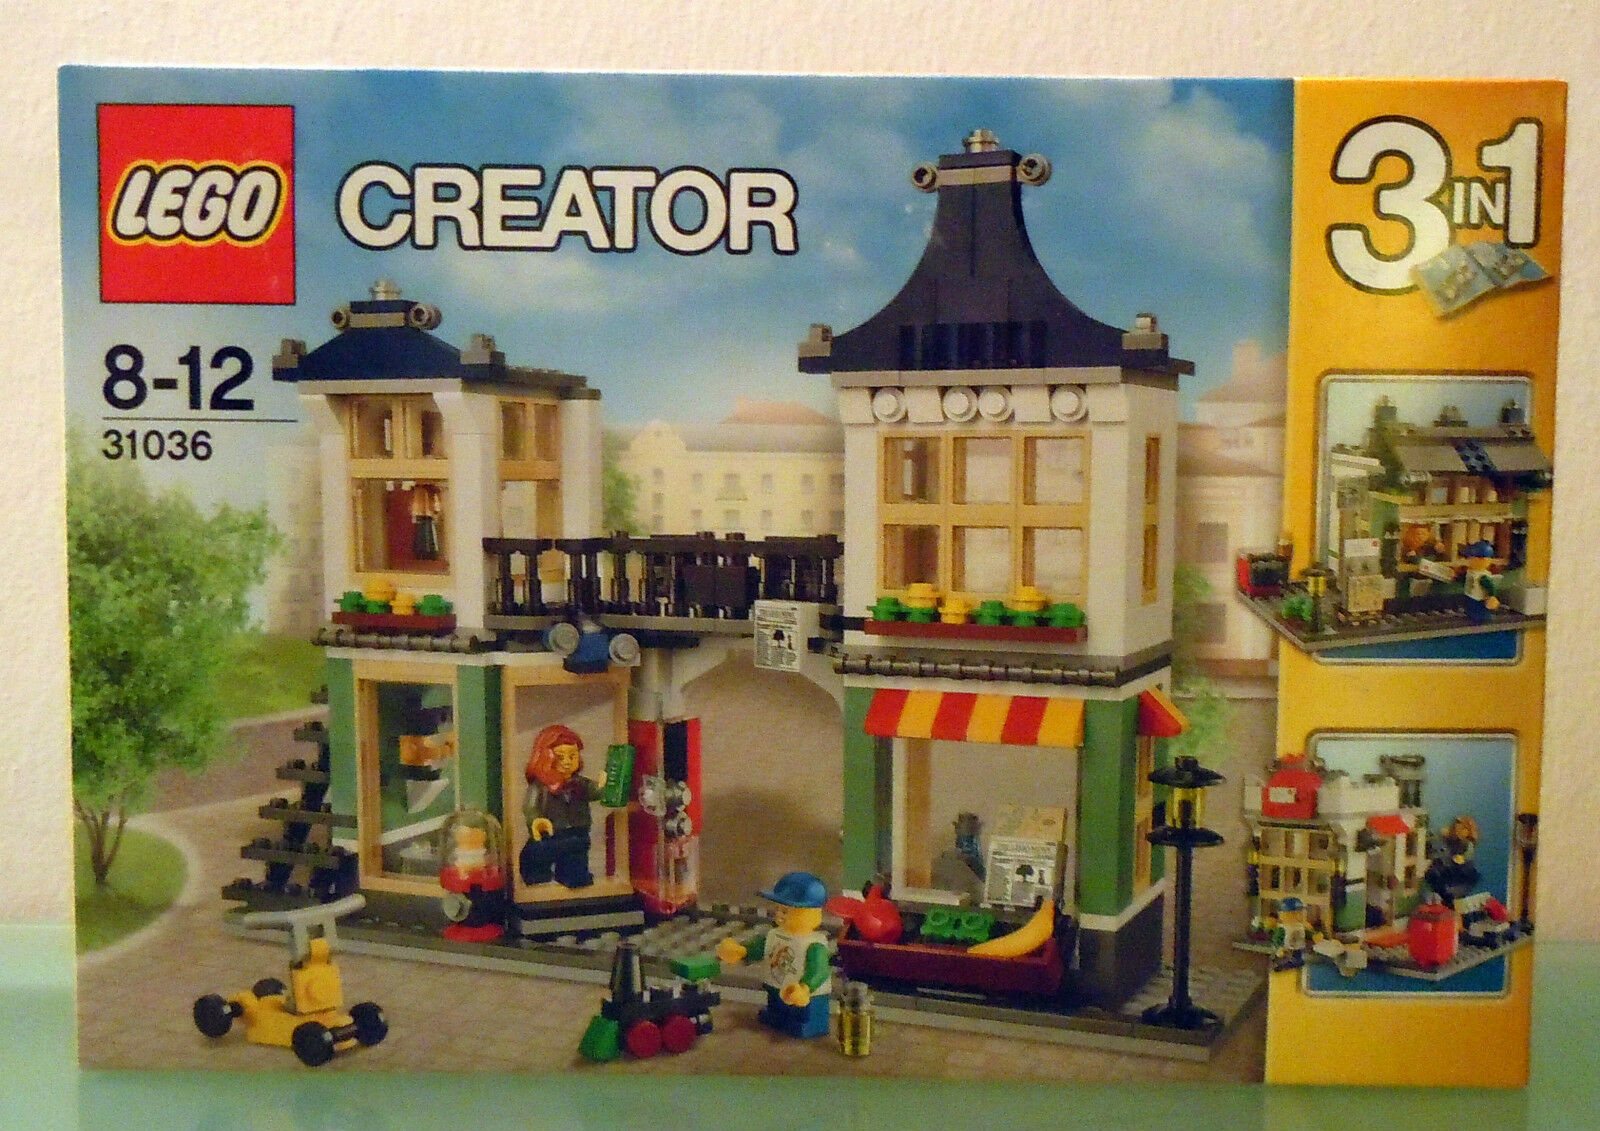 LEGO CREATOR 3 IN 1 TOY & Grocery Set - 31036